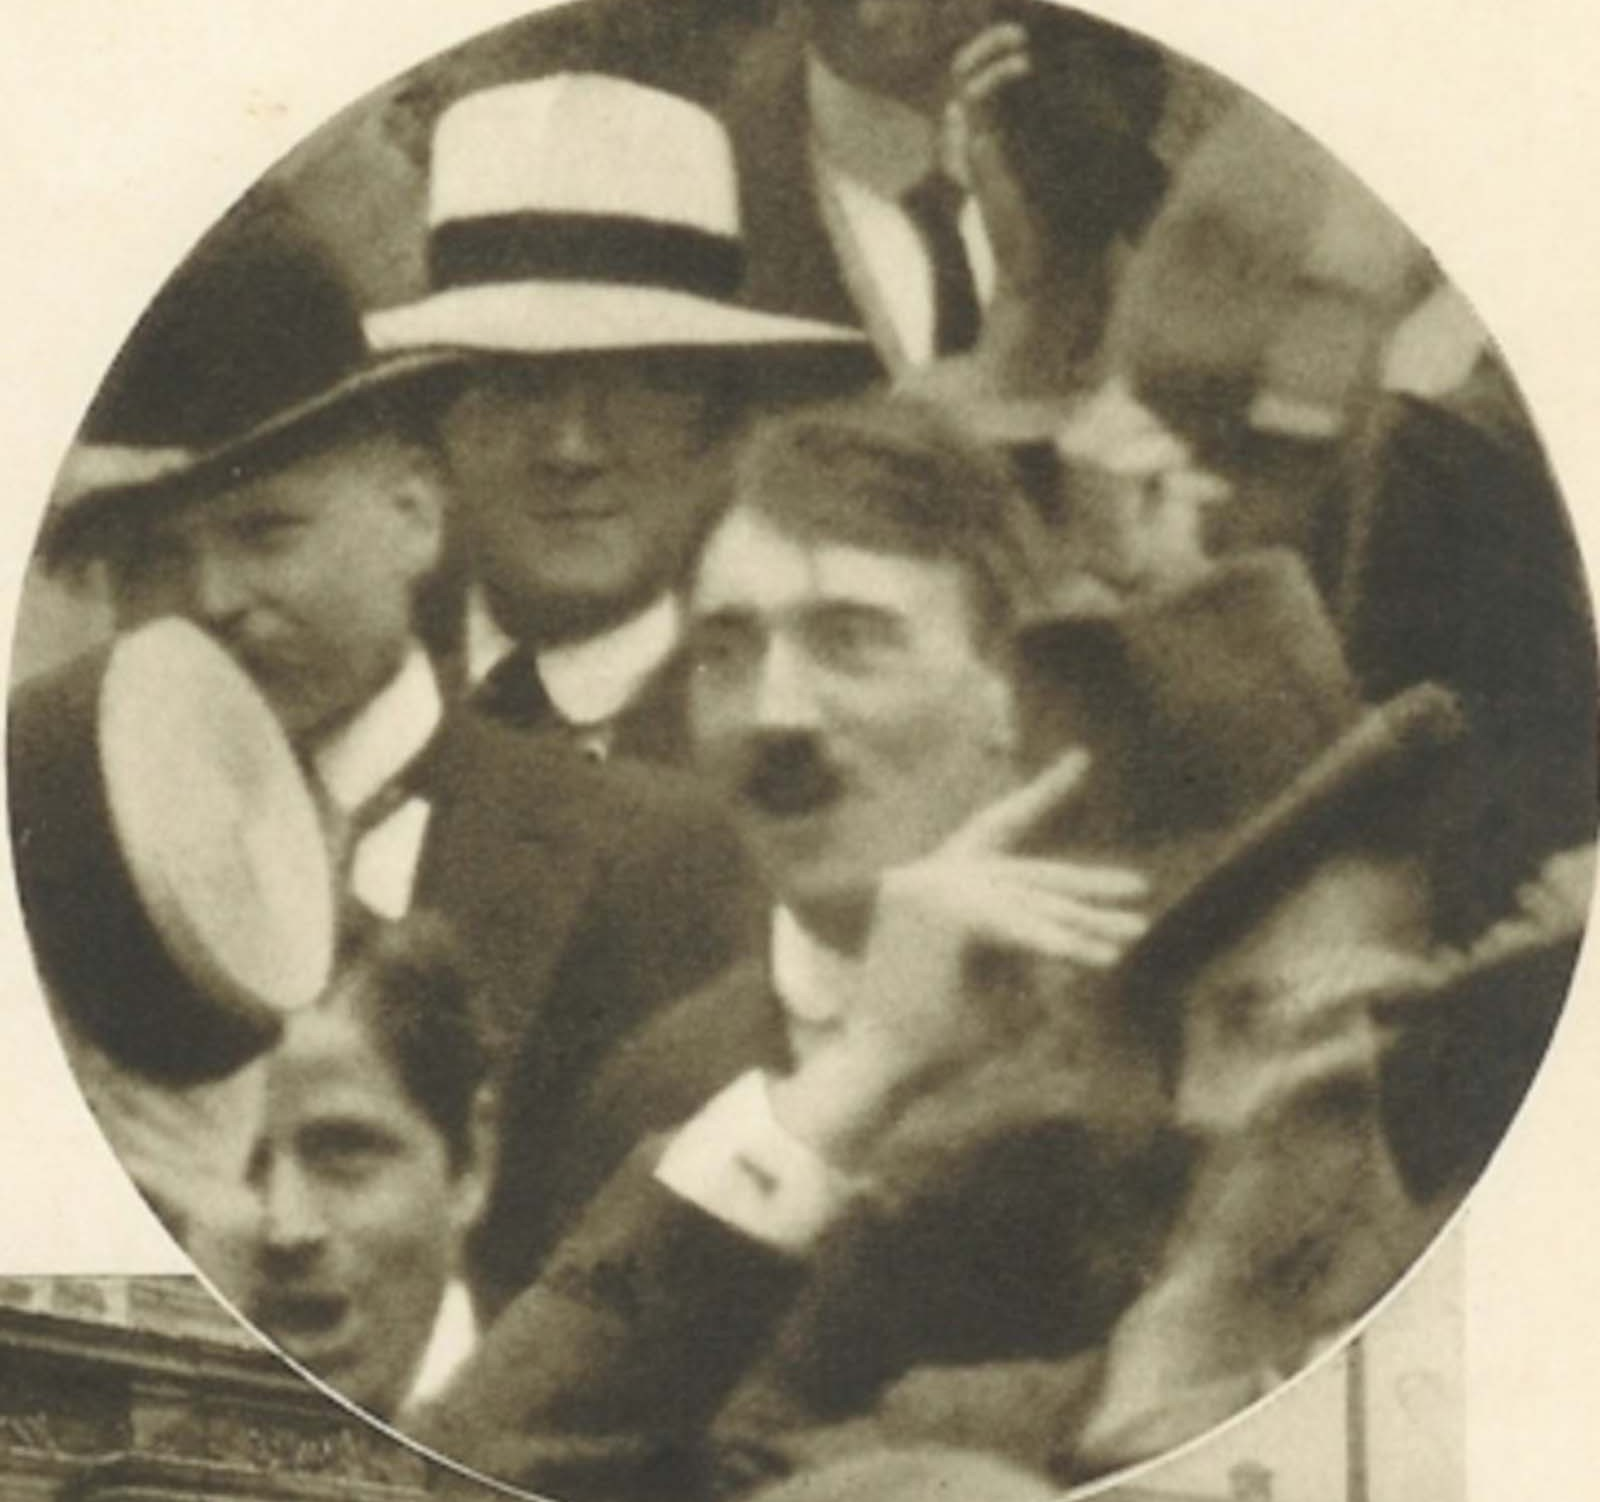 Hitler at OdeonPlatz in Munich, August 1914